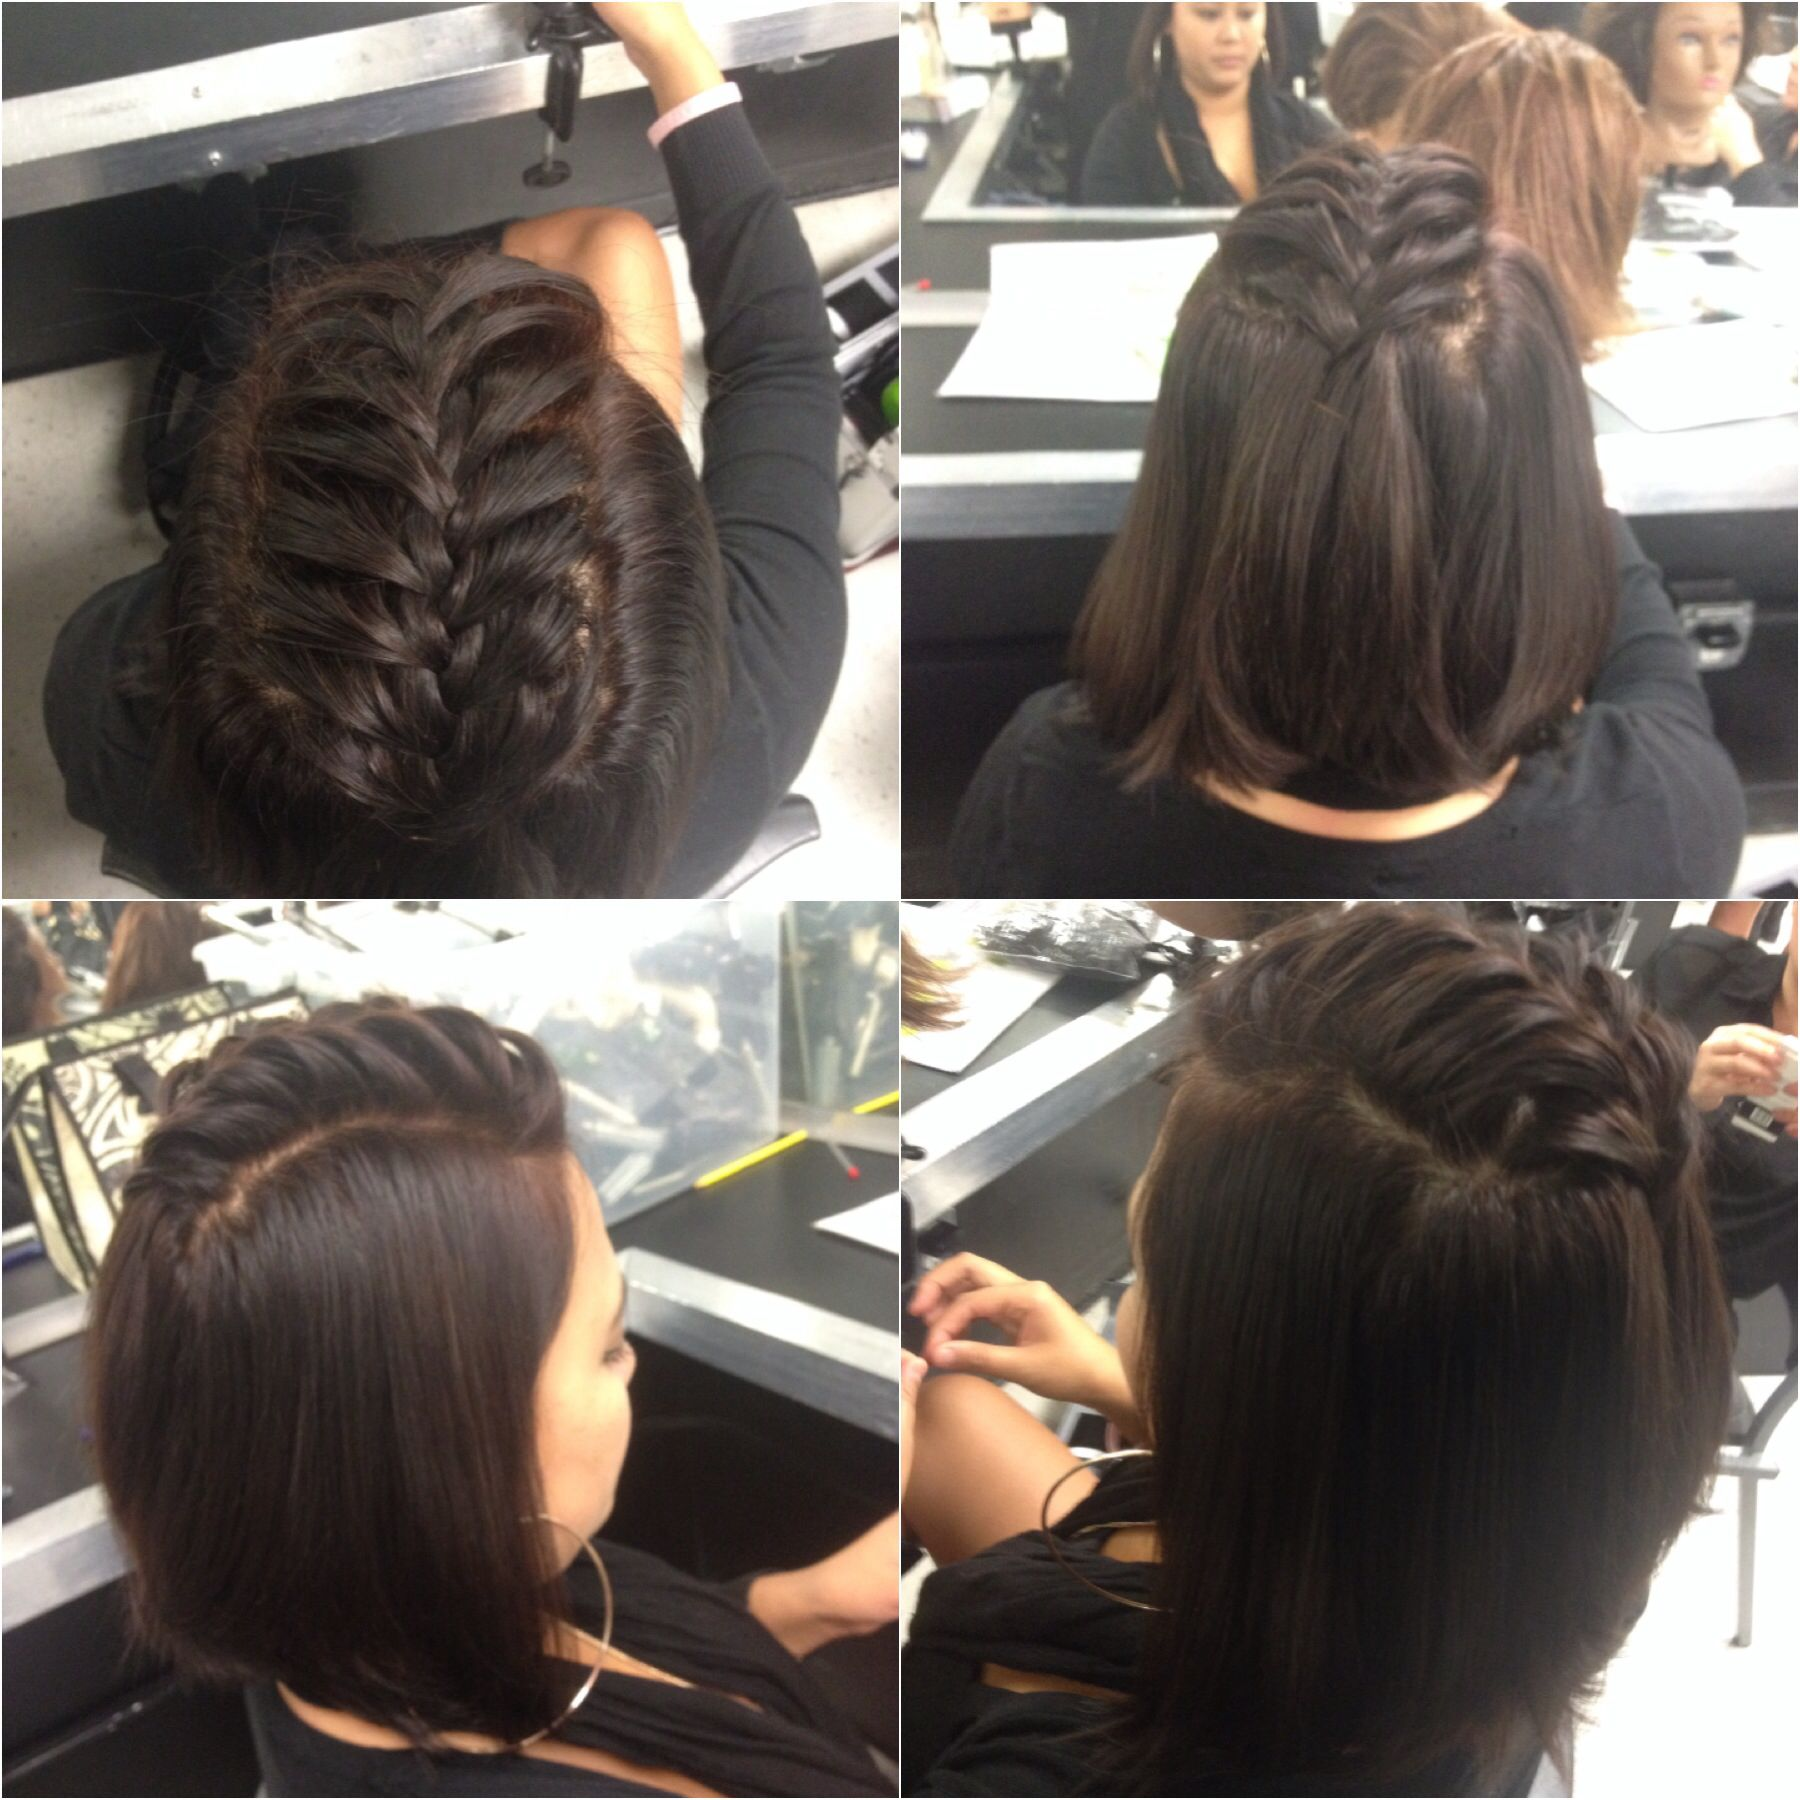 Very simple 5 minute hairstyle on a classmate Hair